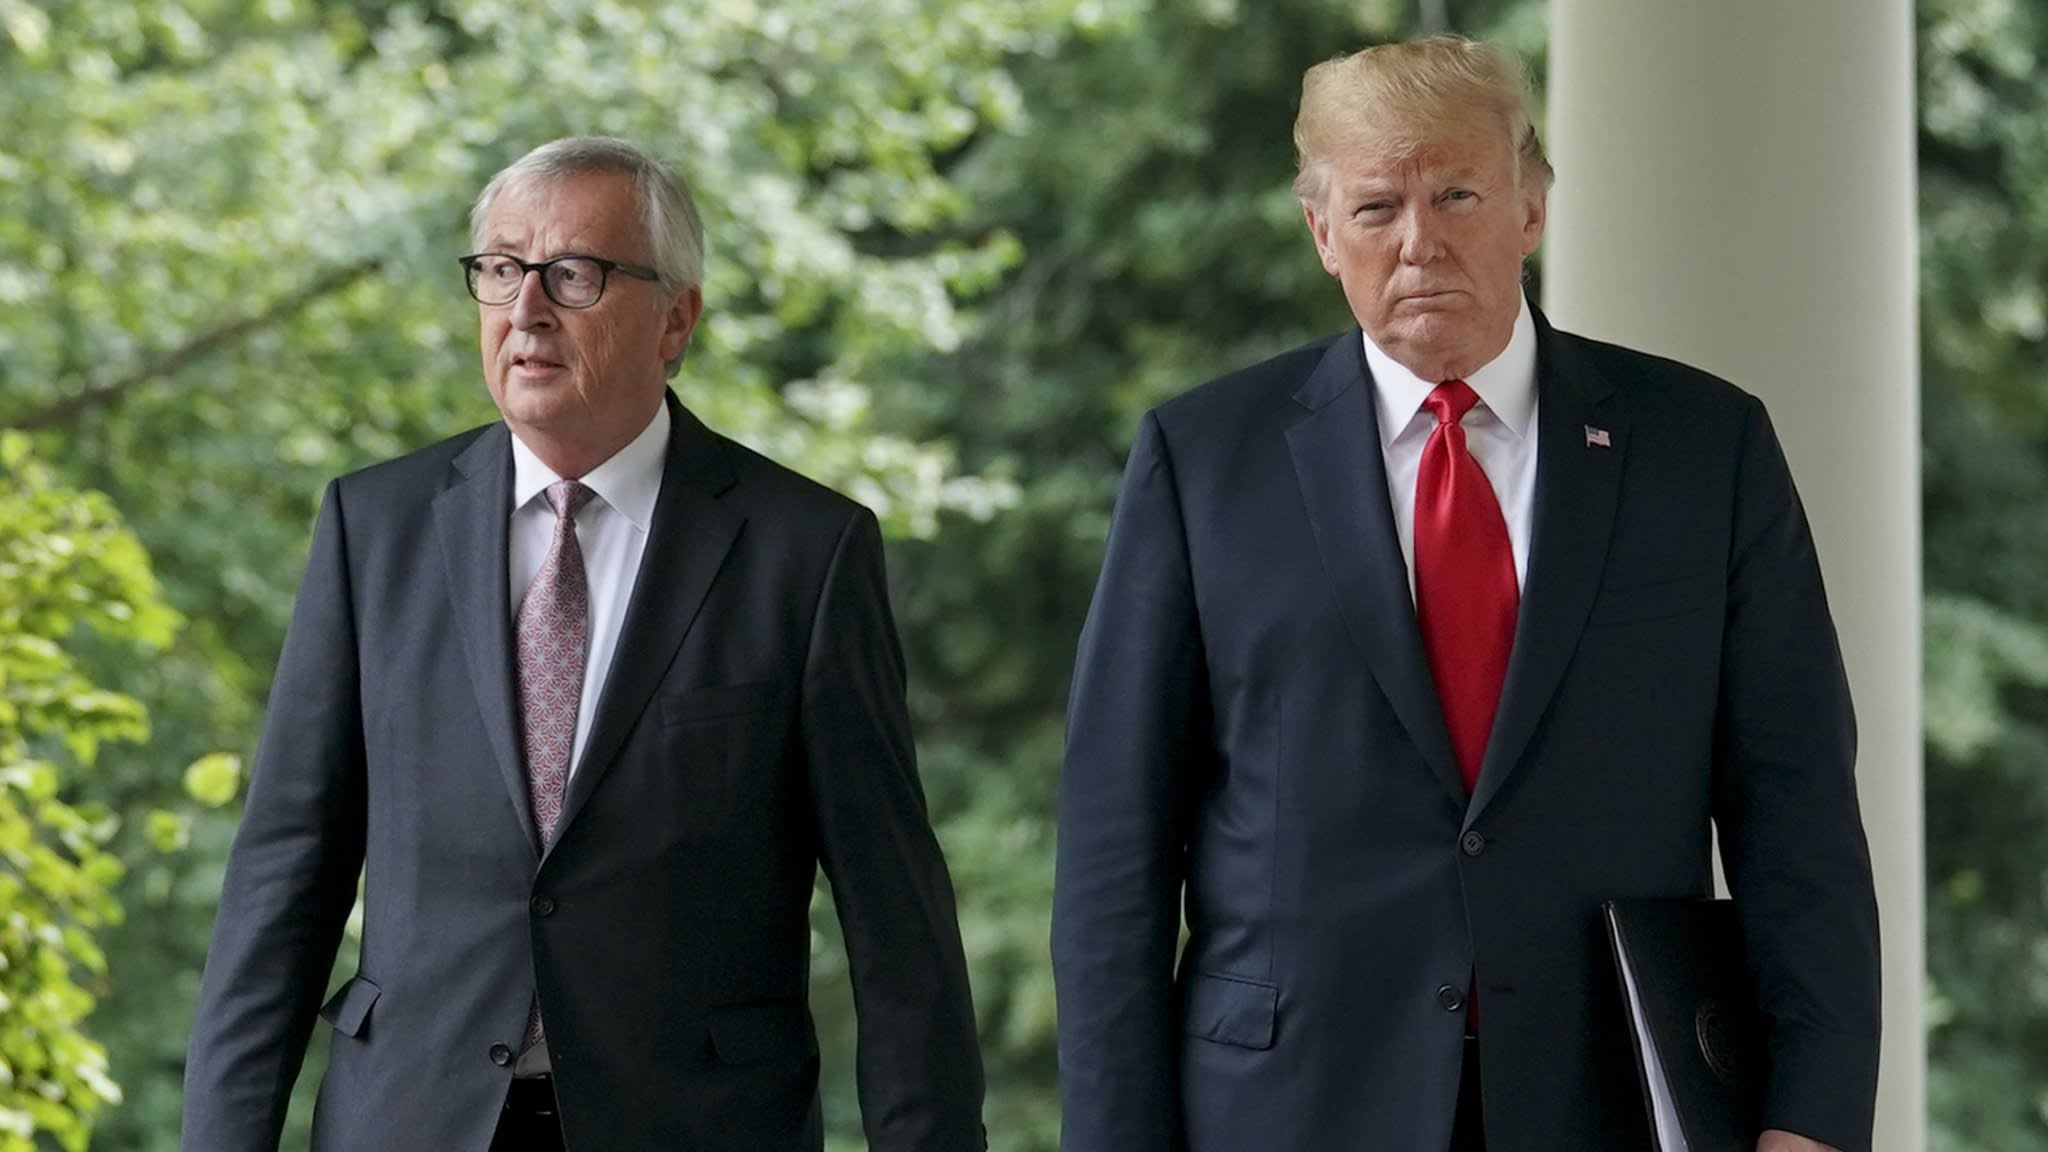 Trump's hopes for EU trade deal hampered by agriculture